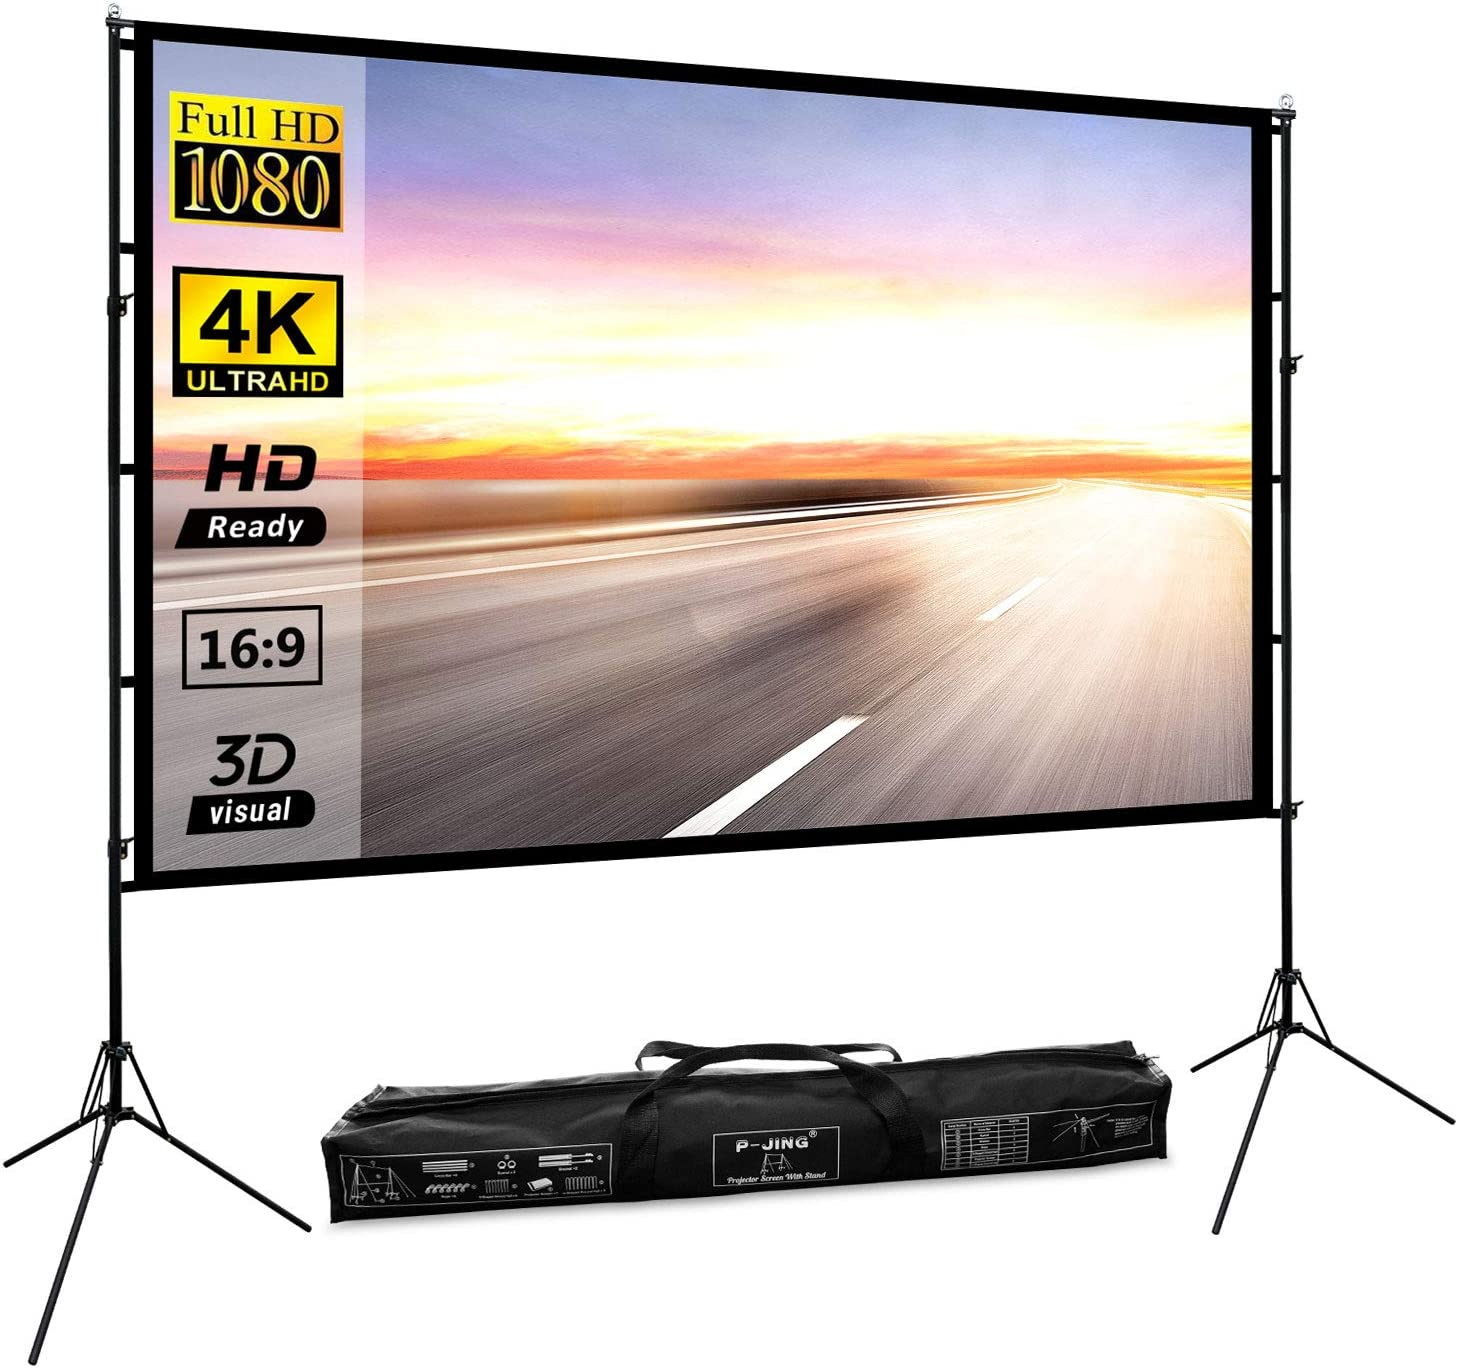 Projector Screen with Stand 100inch Portable Projection Screen 16:9 4K HD Rear Front Projections Movies Screen for Indoor Outdoor Home Theater Backyard Cinema Trave - New